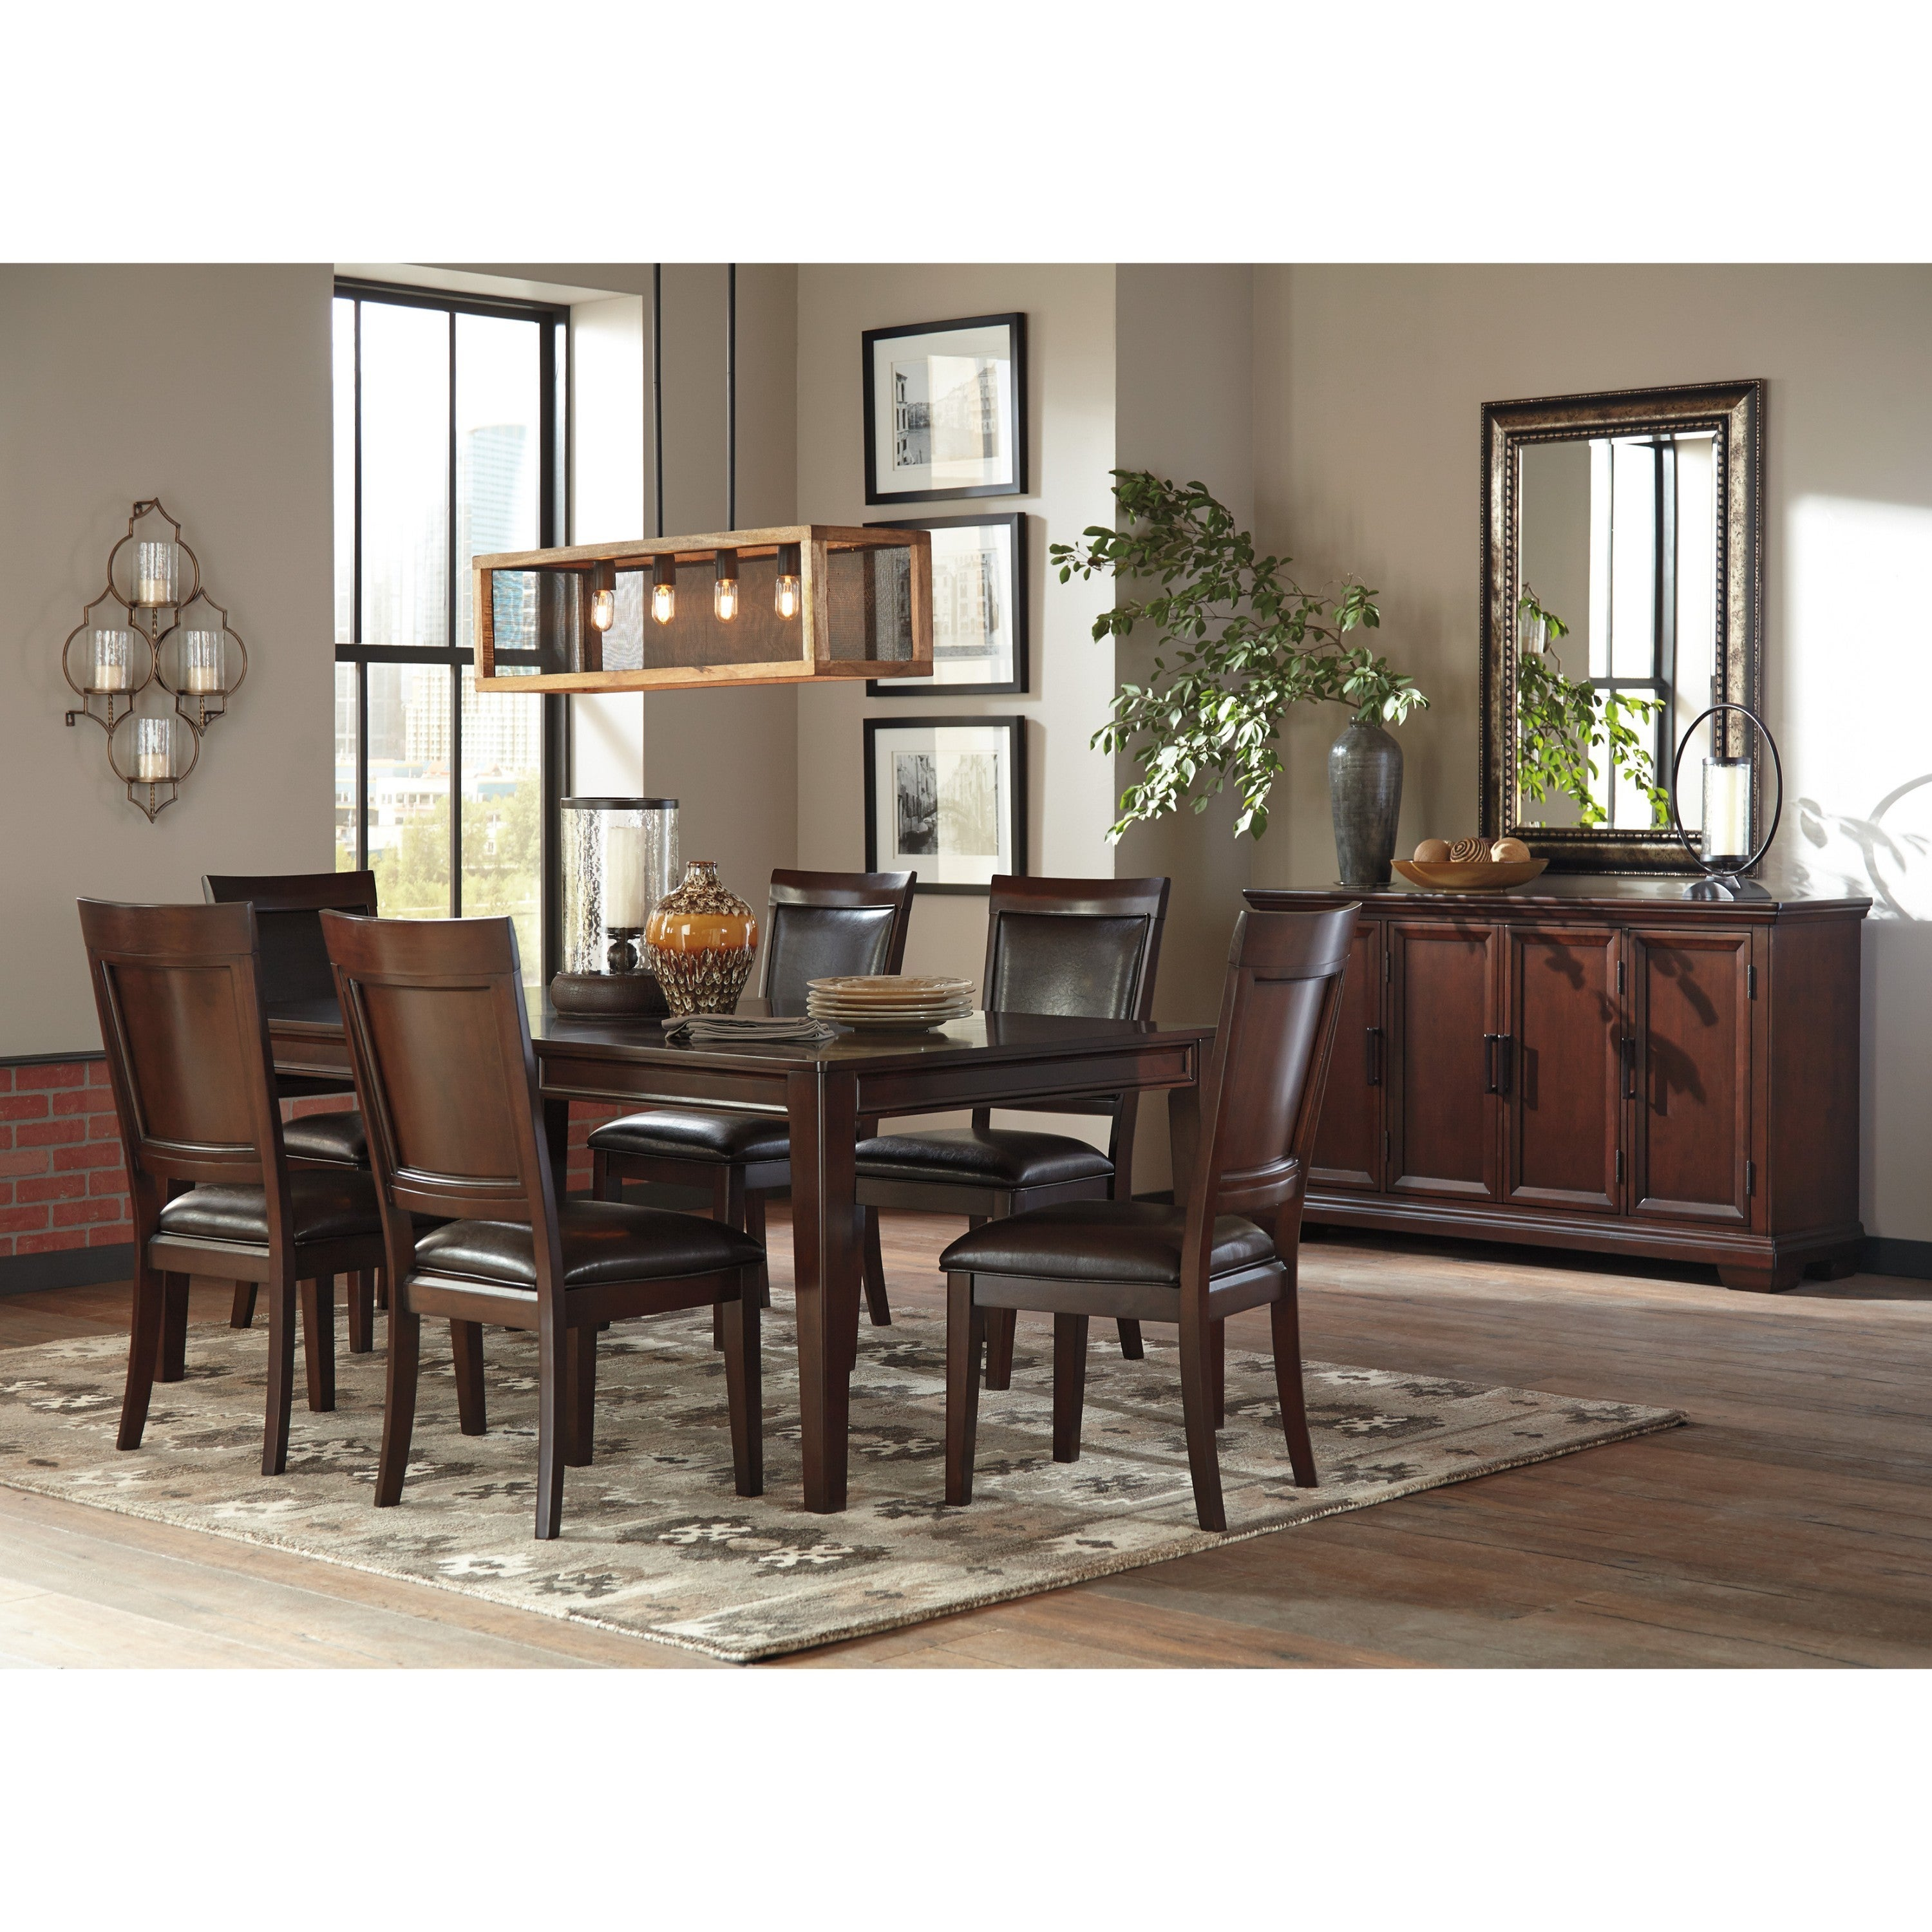 Shop Signature Design By Ashley Shadyn Brown 5 Piece Dining Set   Free  Shipping Today   Overstock.com   14564513